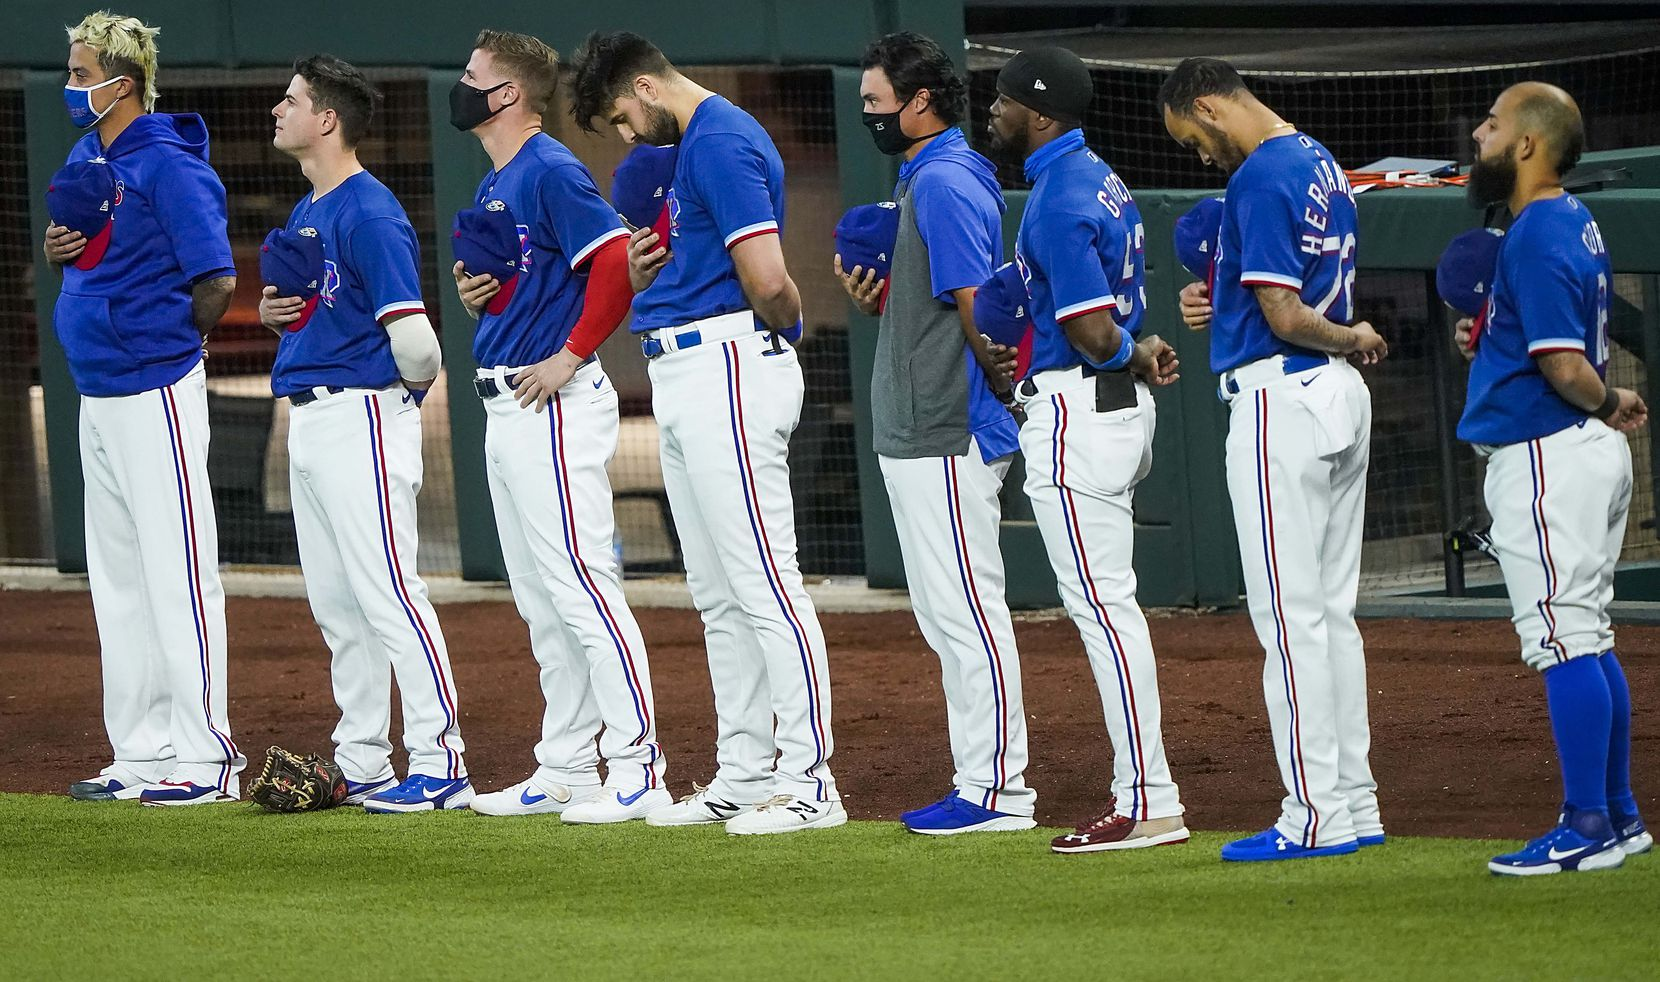 Texas Rangers players stand for the national anthem before exhibition game against the Colorado Rockies at Globe Life Field on Tuesday, July 21, 2020